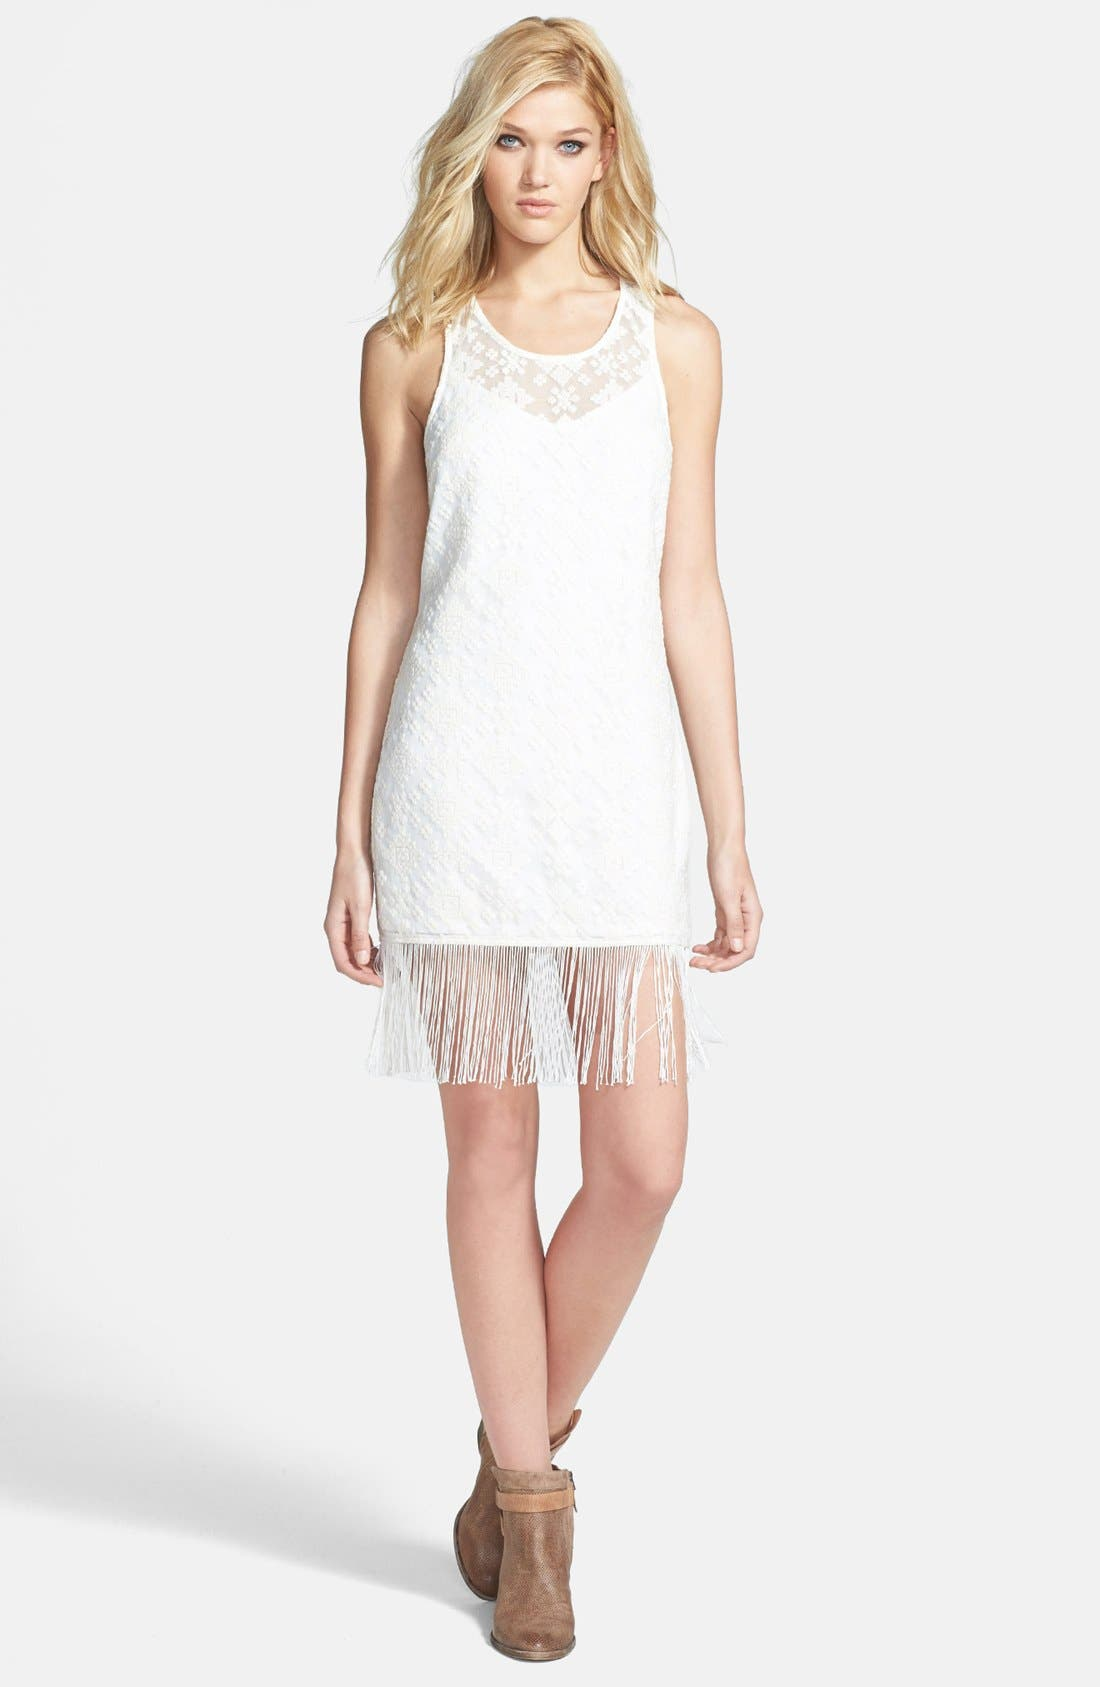 Main Image - ASTR Embroidered Mesh Fringed Body-Con Dress